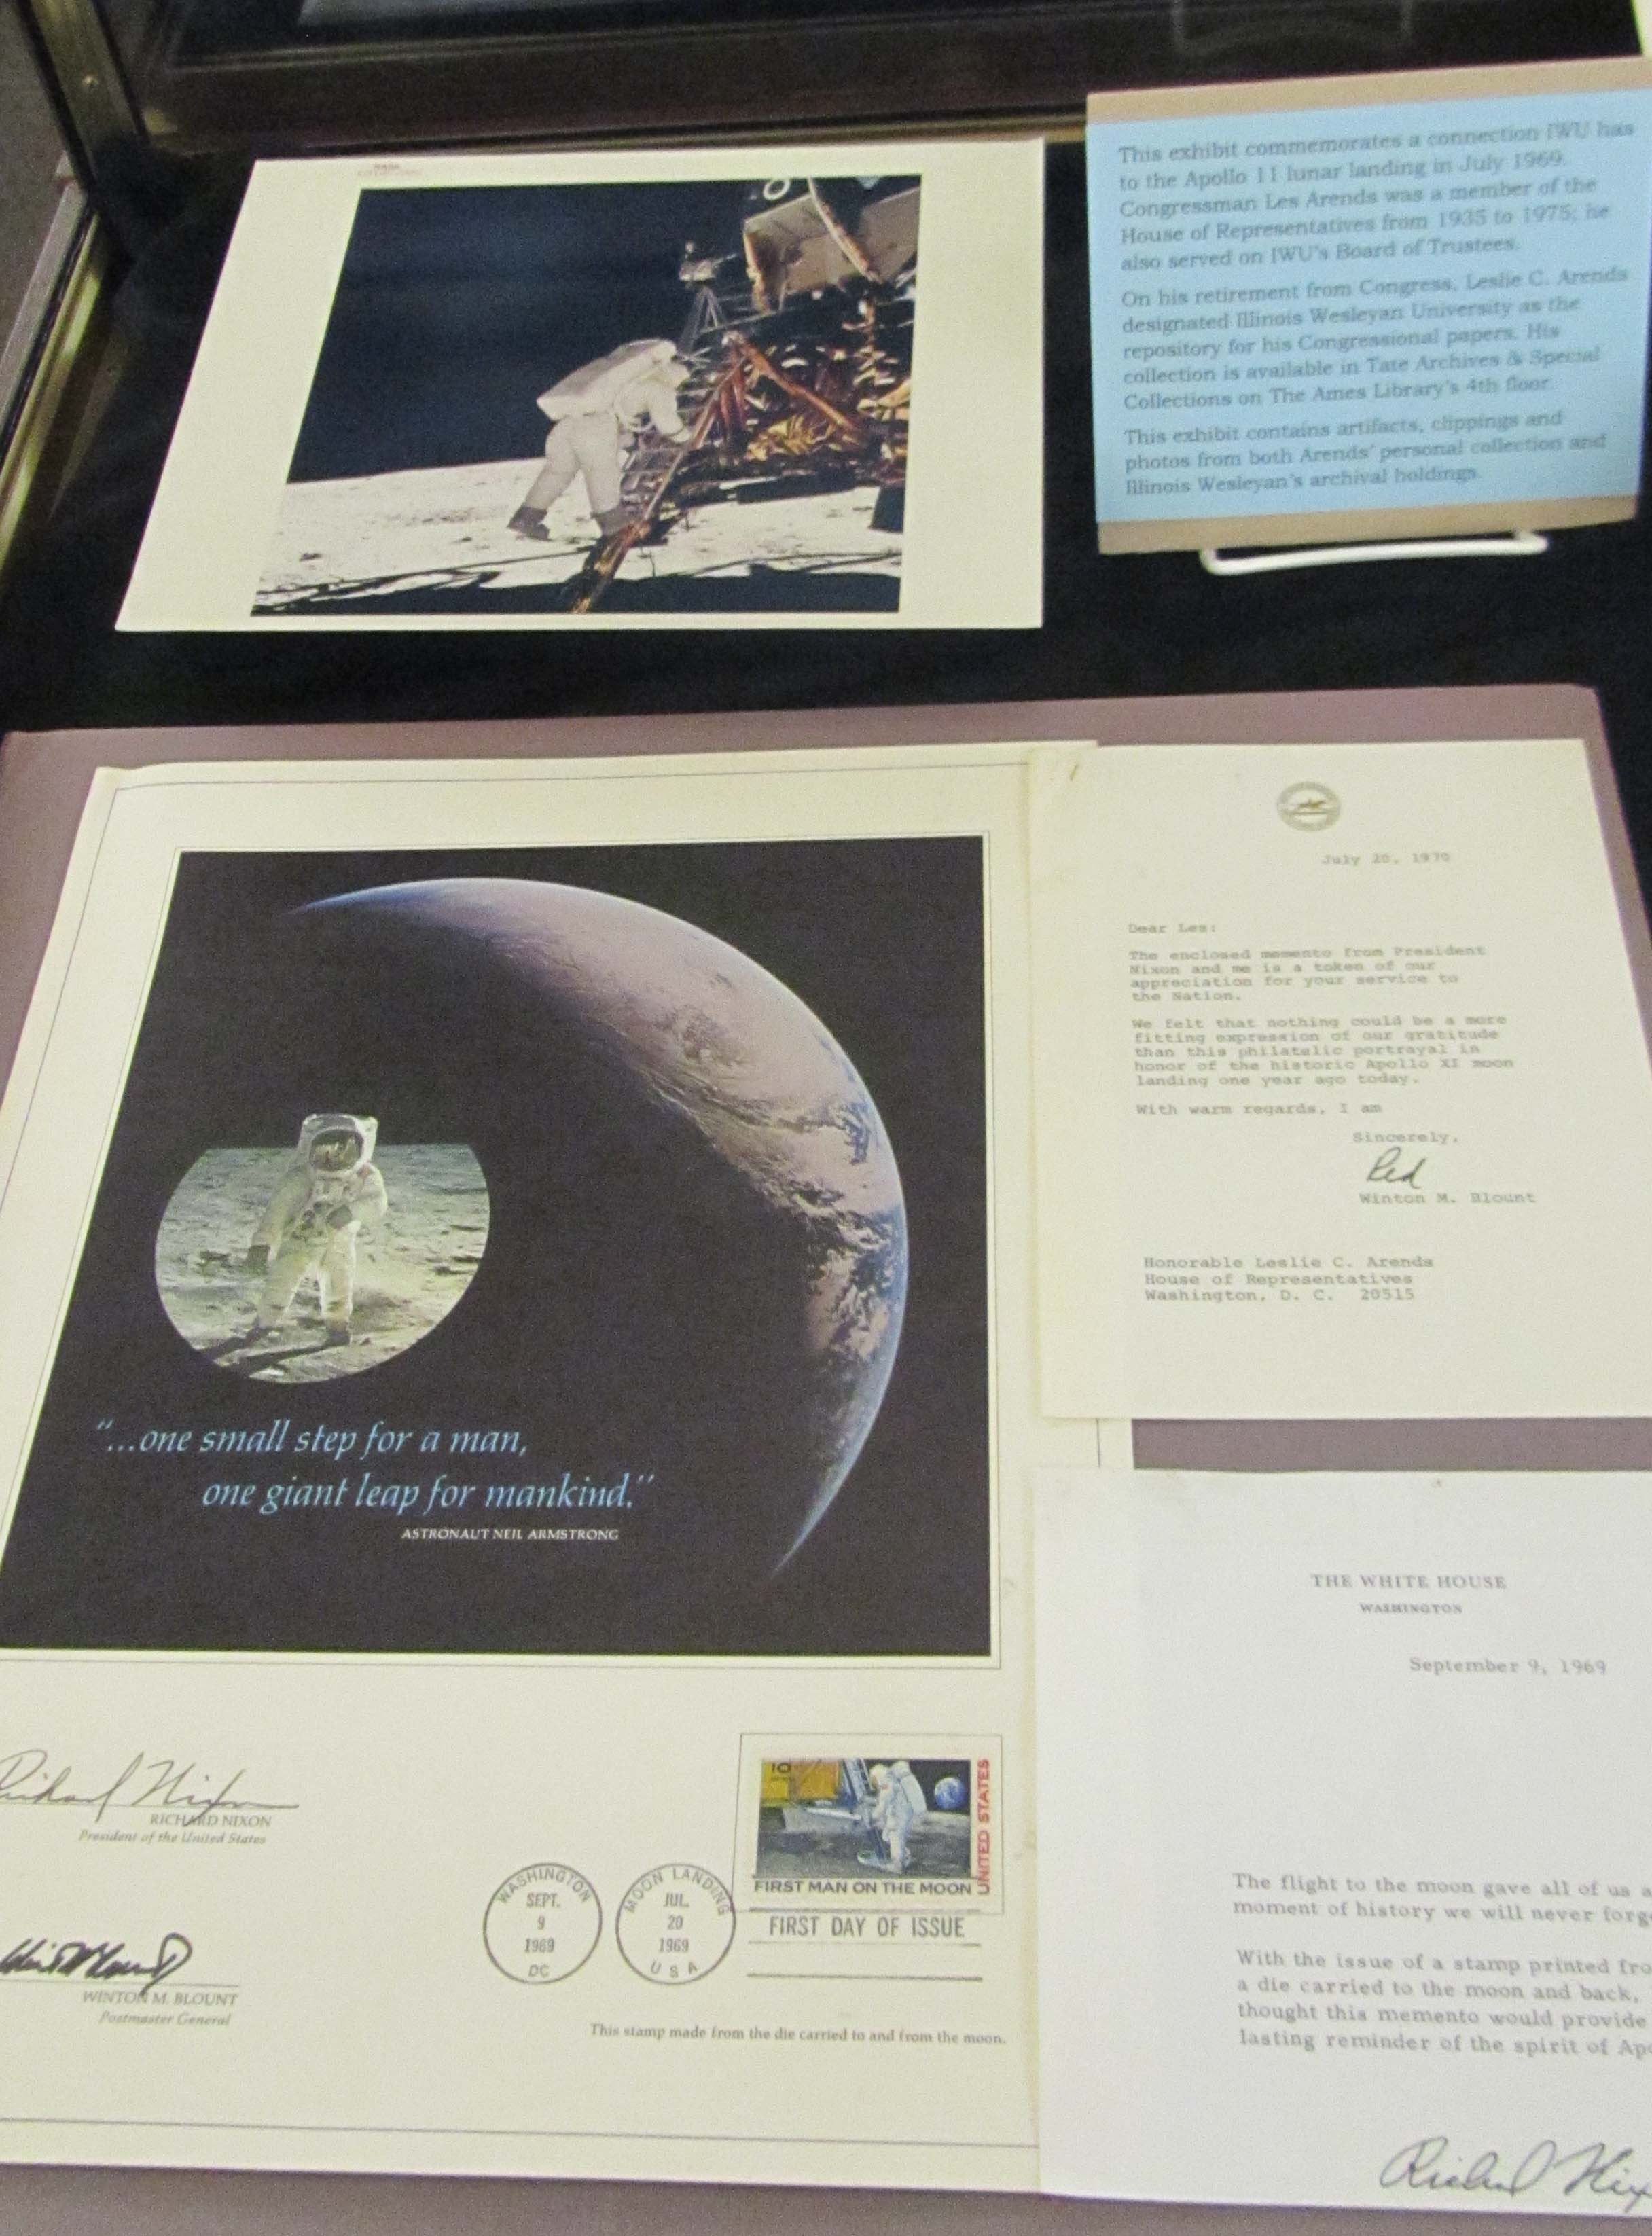 two items placed on the left hand side of the Apollo 11 exhibit case